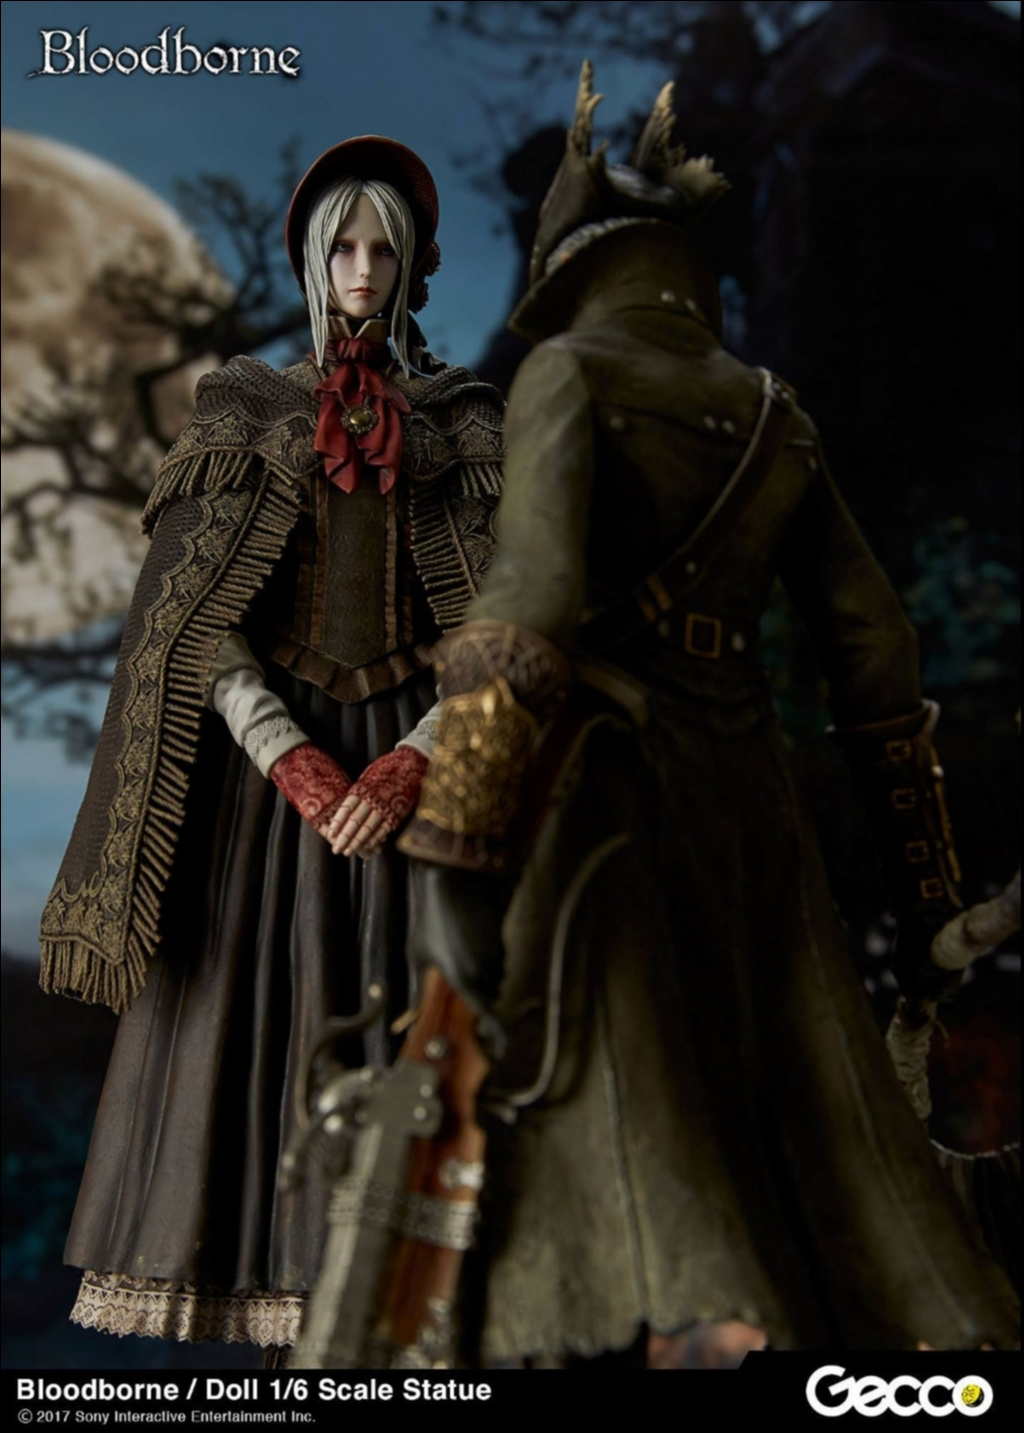 bloodborne-Doll-figure-statue-new-preorder-4-65-1499370758-23-1499371334.jpg